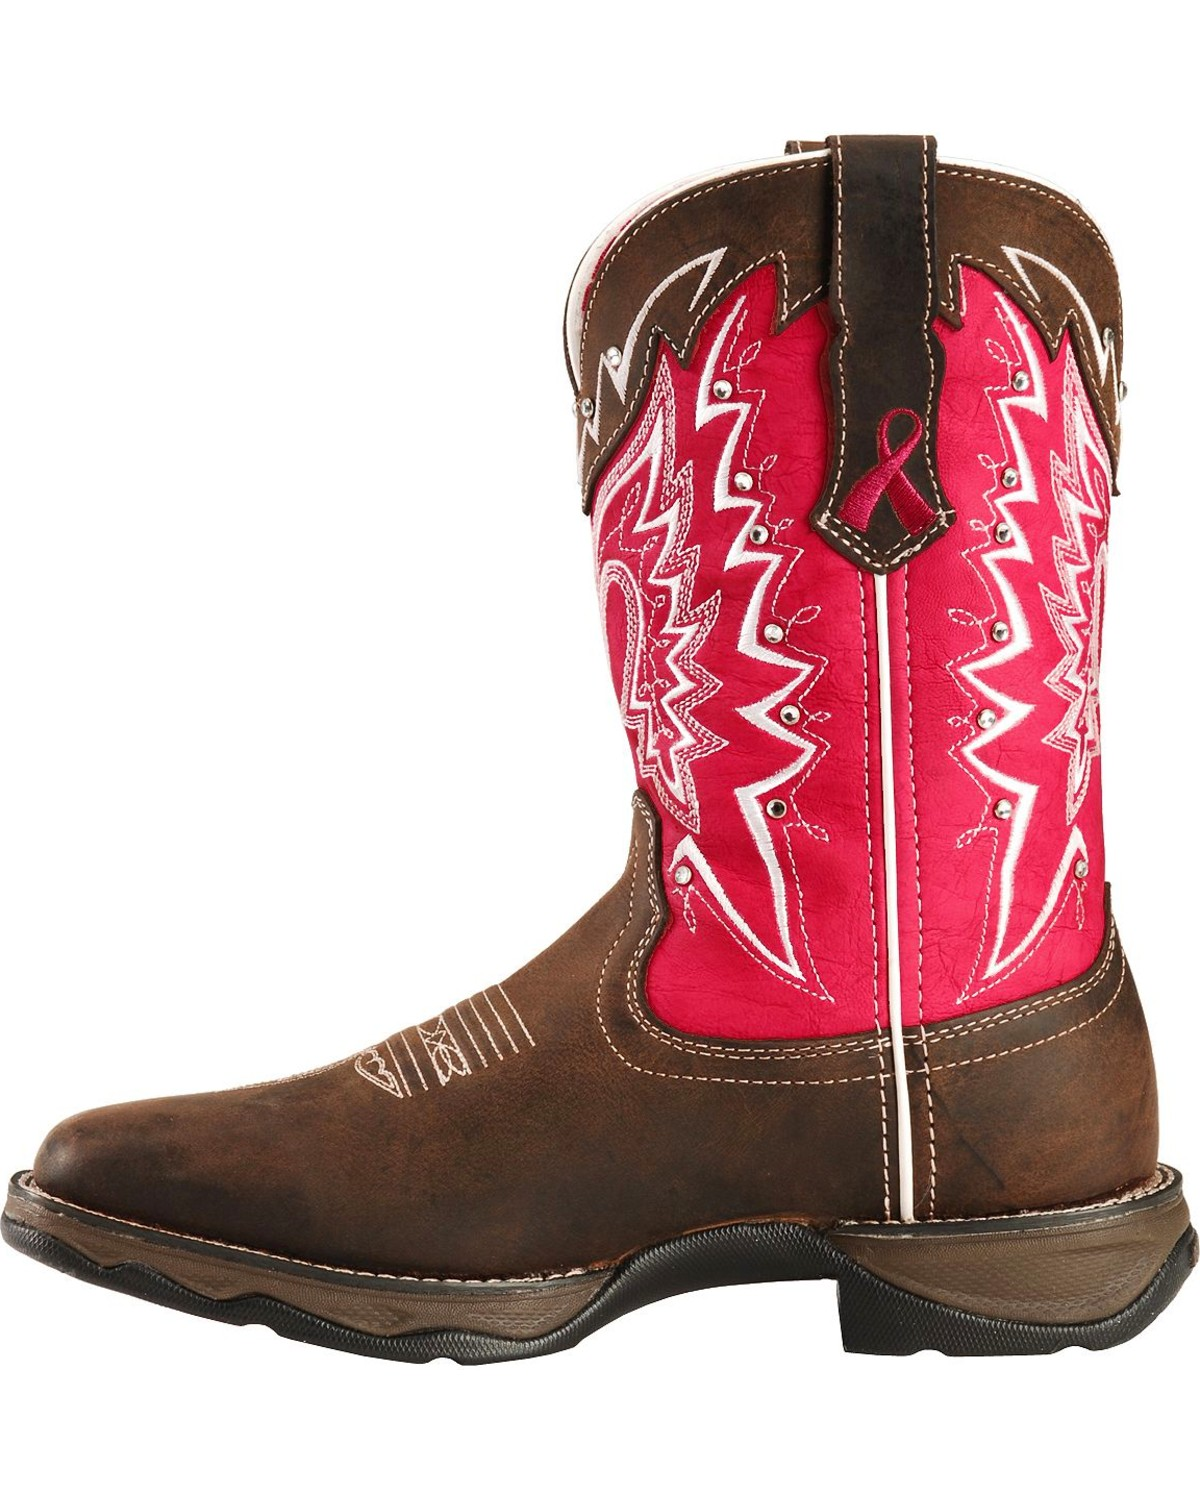 Durango Pink Ribbon Lady Rebel ... Women's Cowboy Boots with paypal free shipping footlocker pictures sale online manchester great sale for sale hMvivM